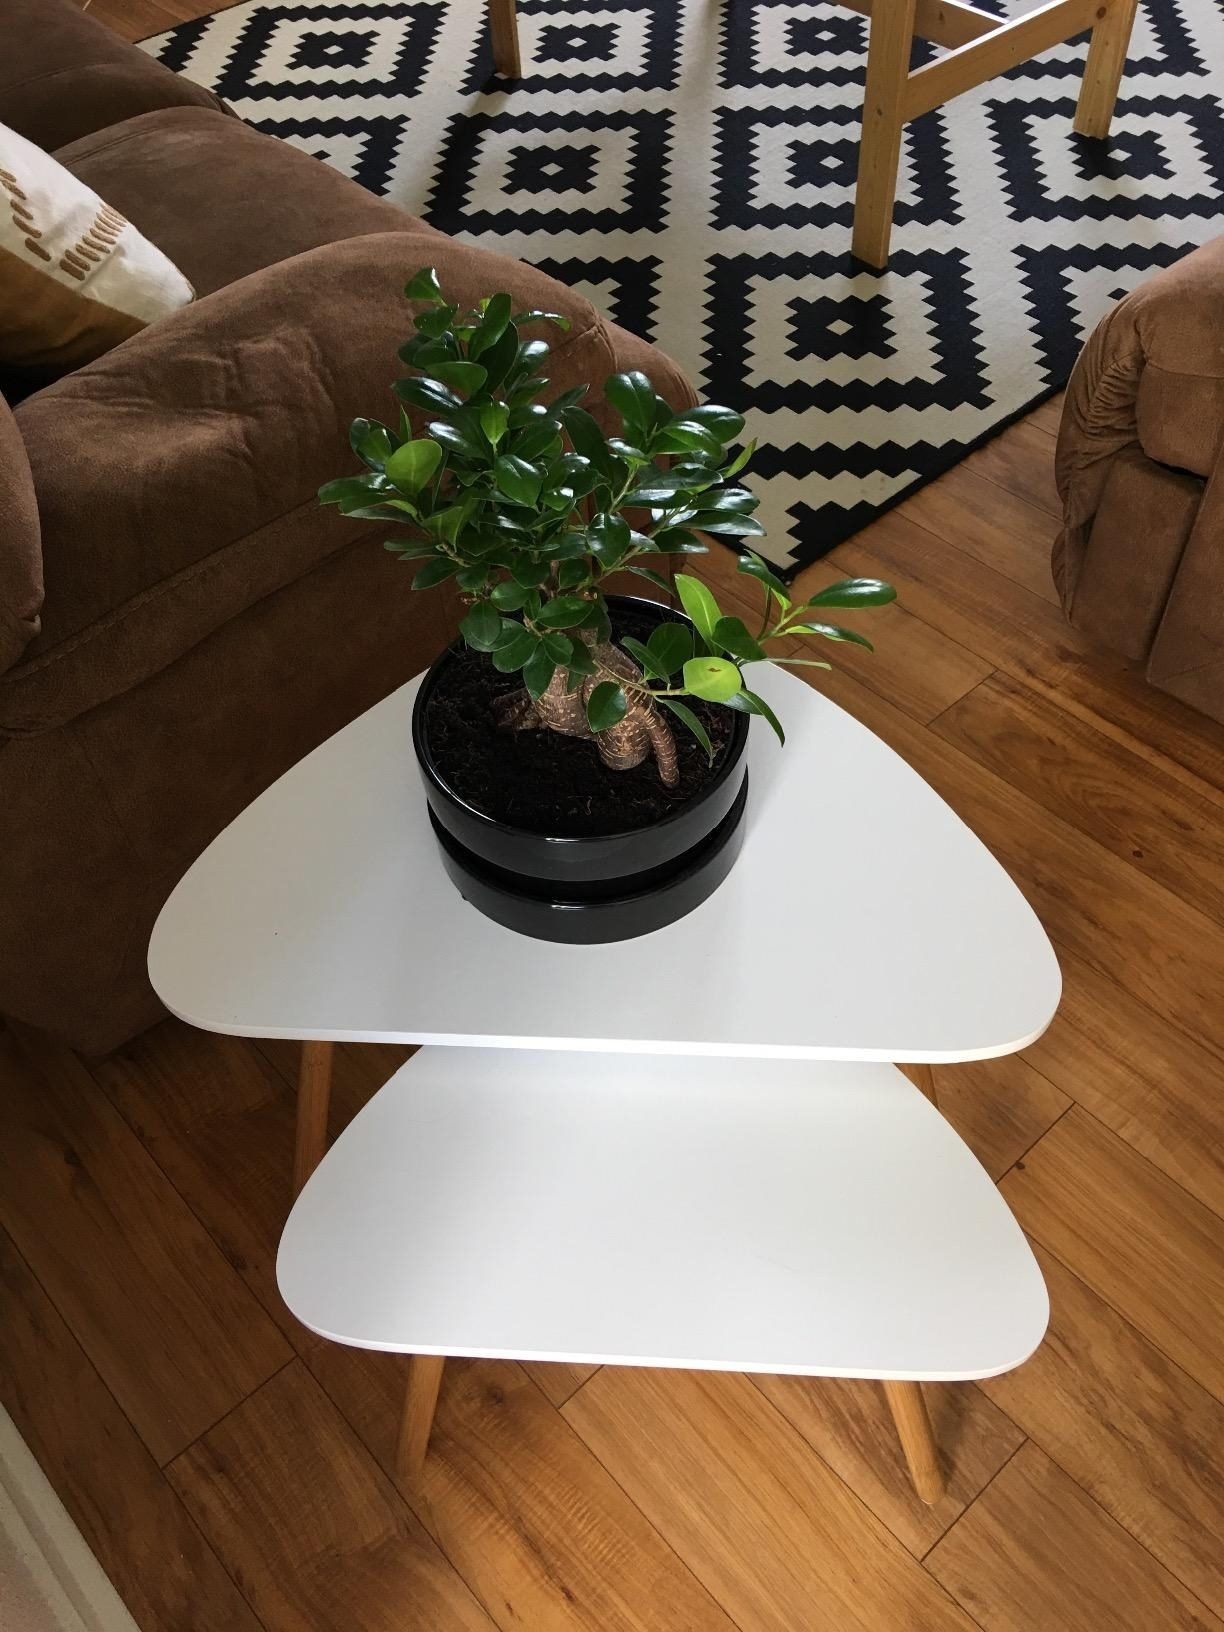 The triangular side tables in a living room clustered together, with a plant on the larger table